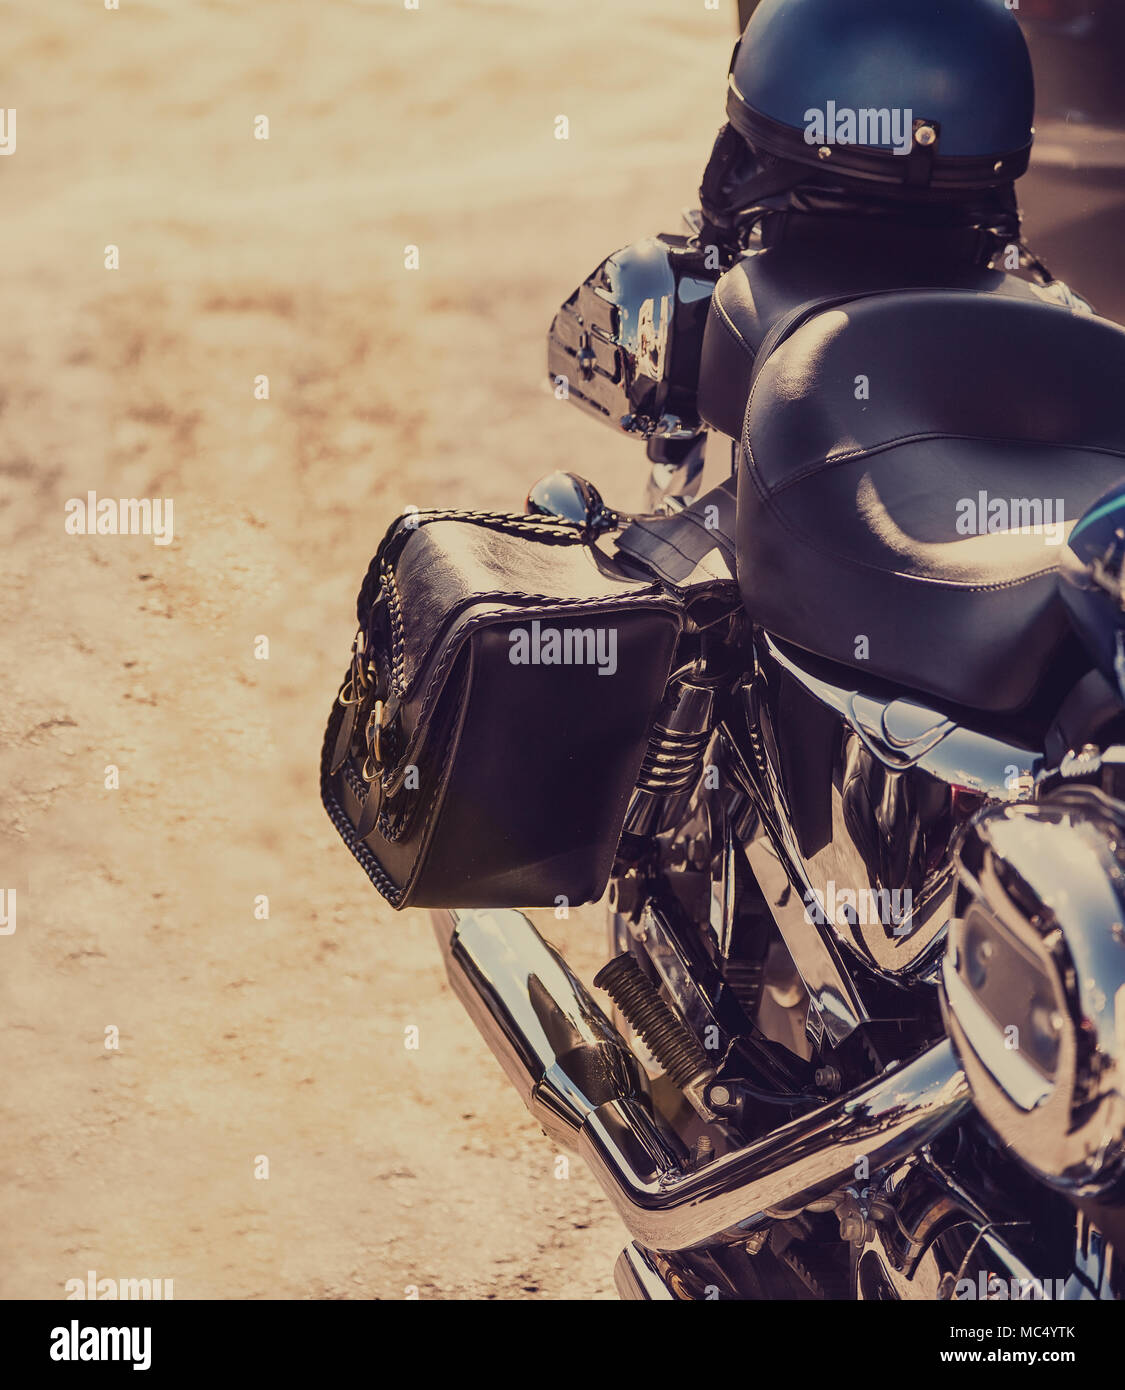 American Motorbike parked on the side of the road. Stock Image. - Stock Image